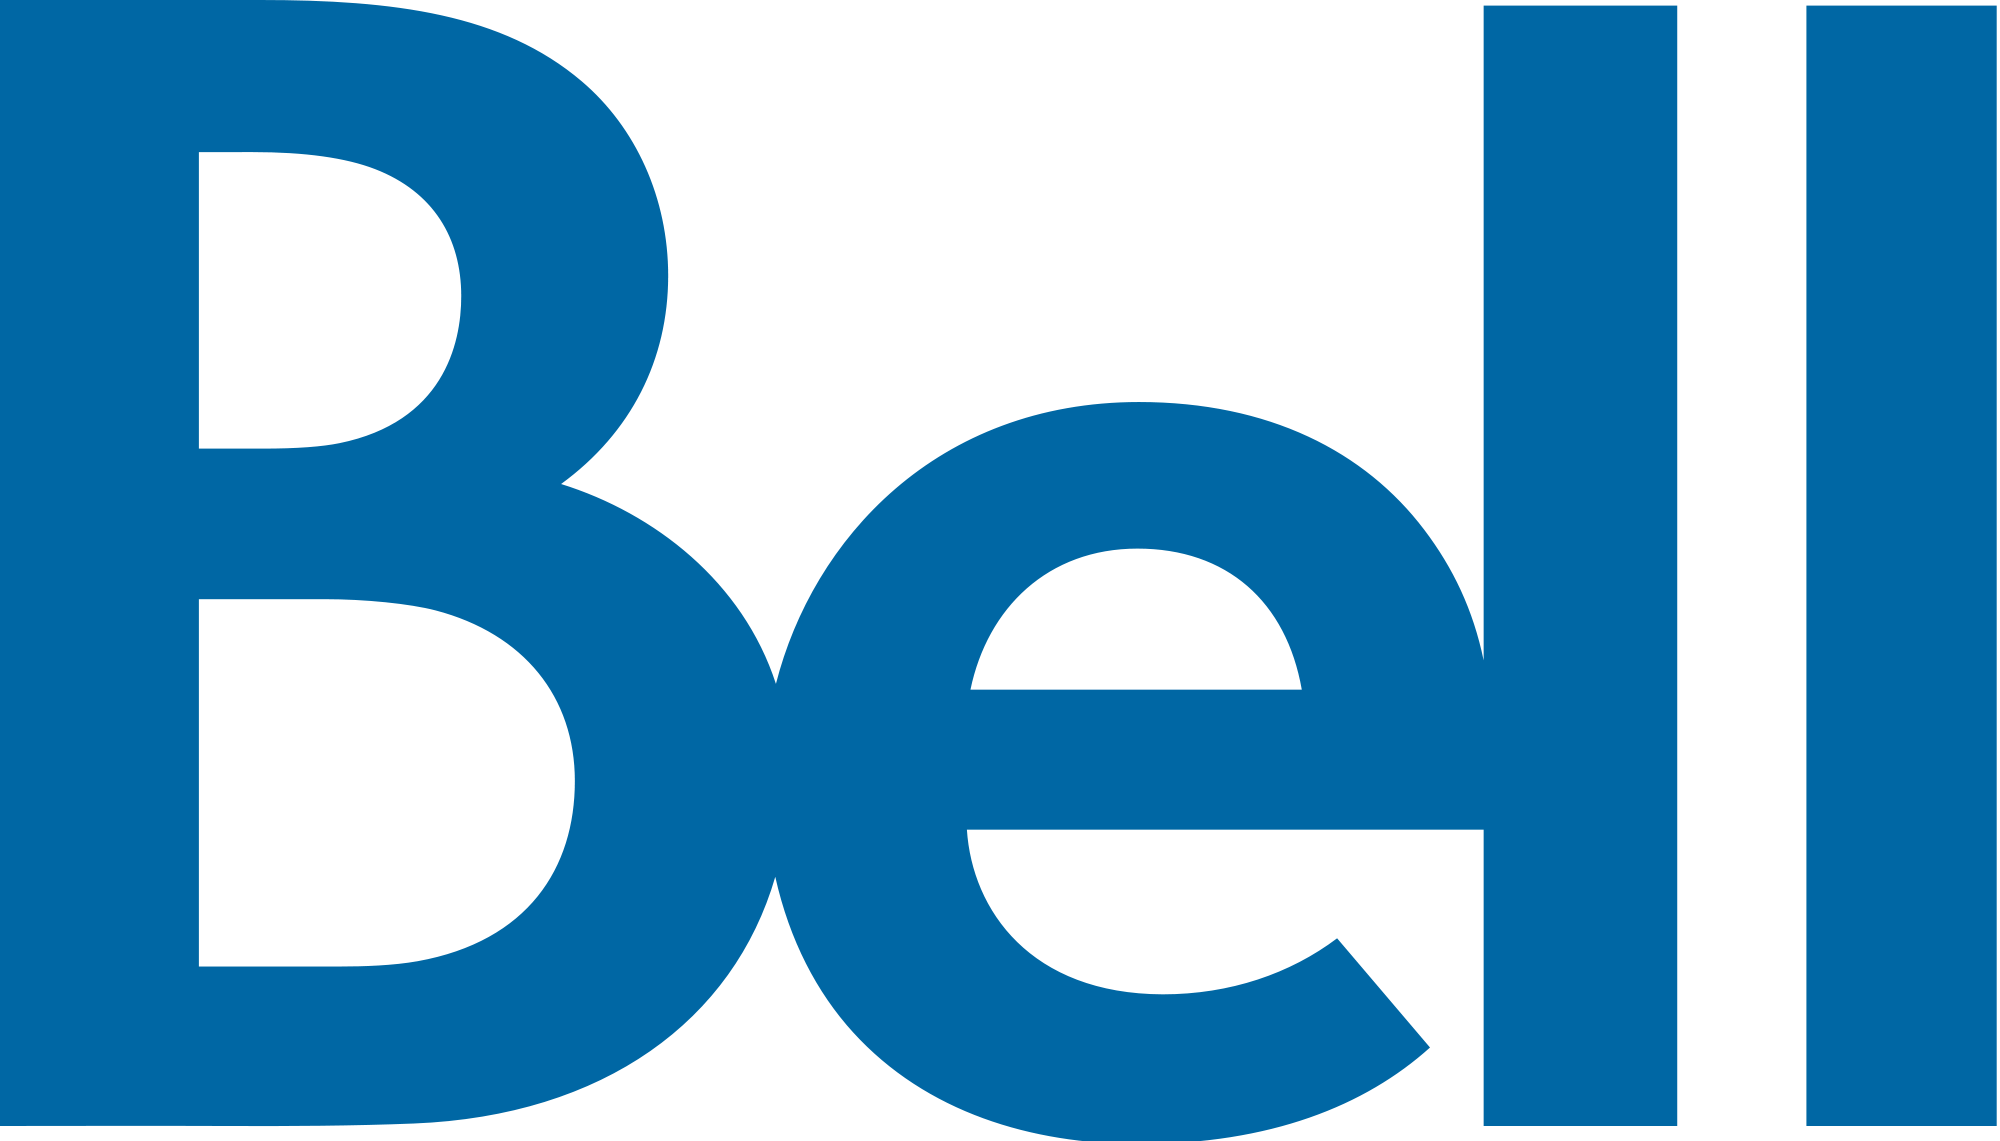 Bell.png